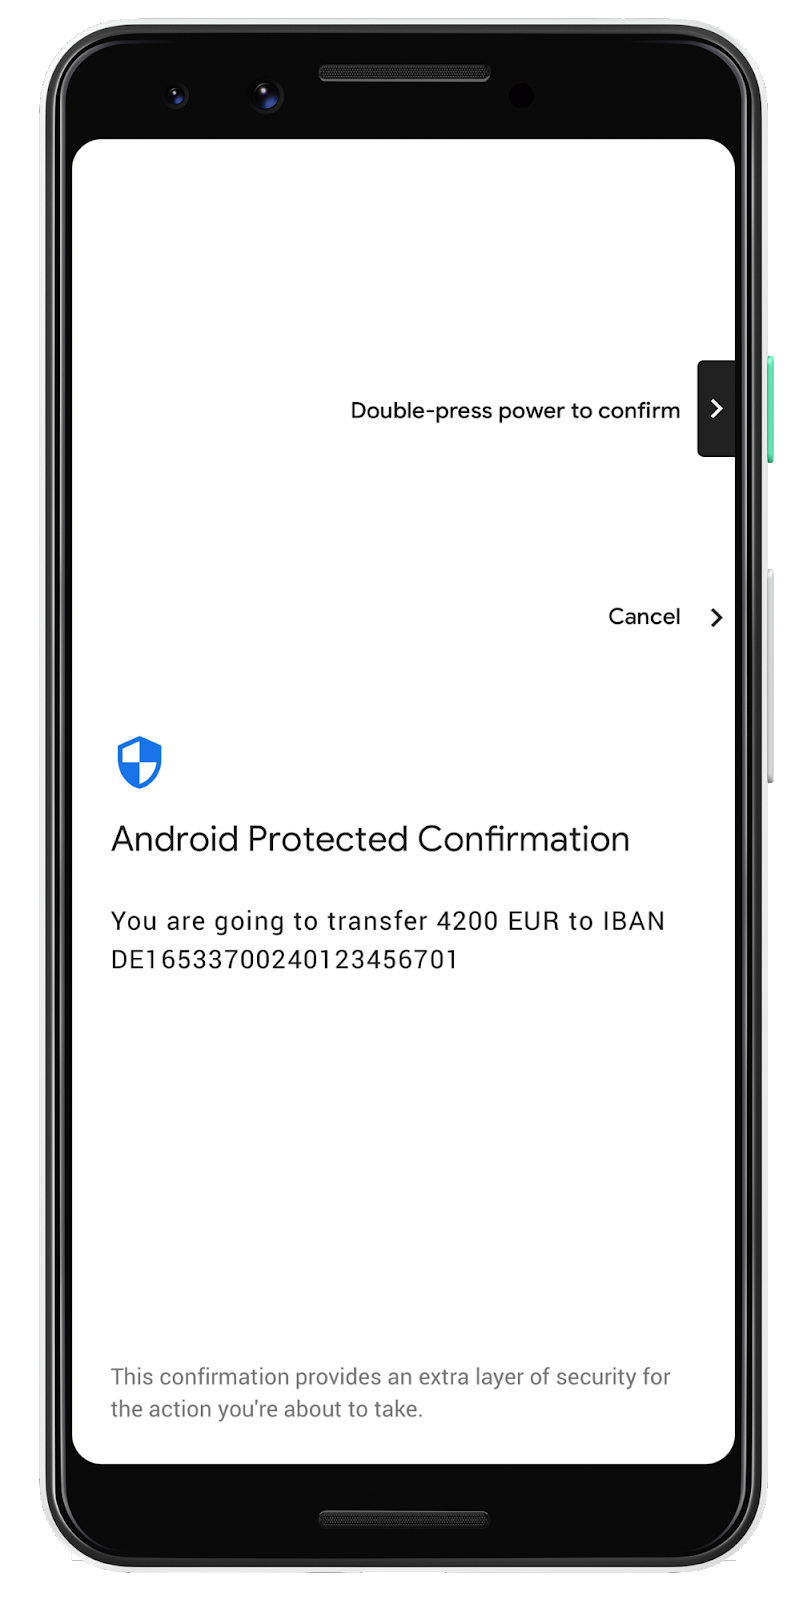 Android Developers Blog: Android Protected Confirmation